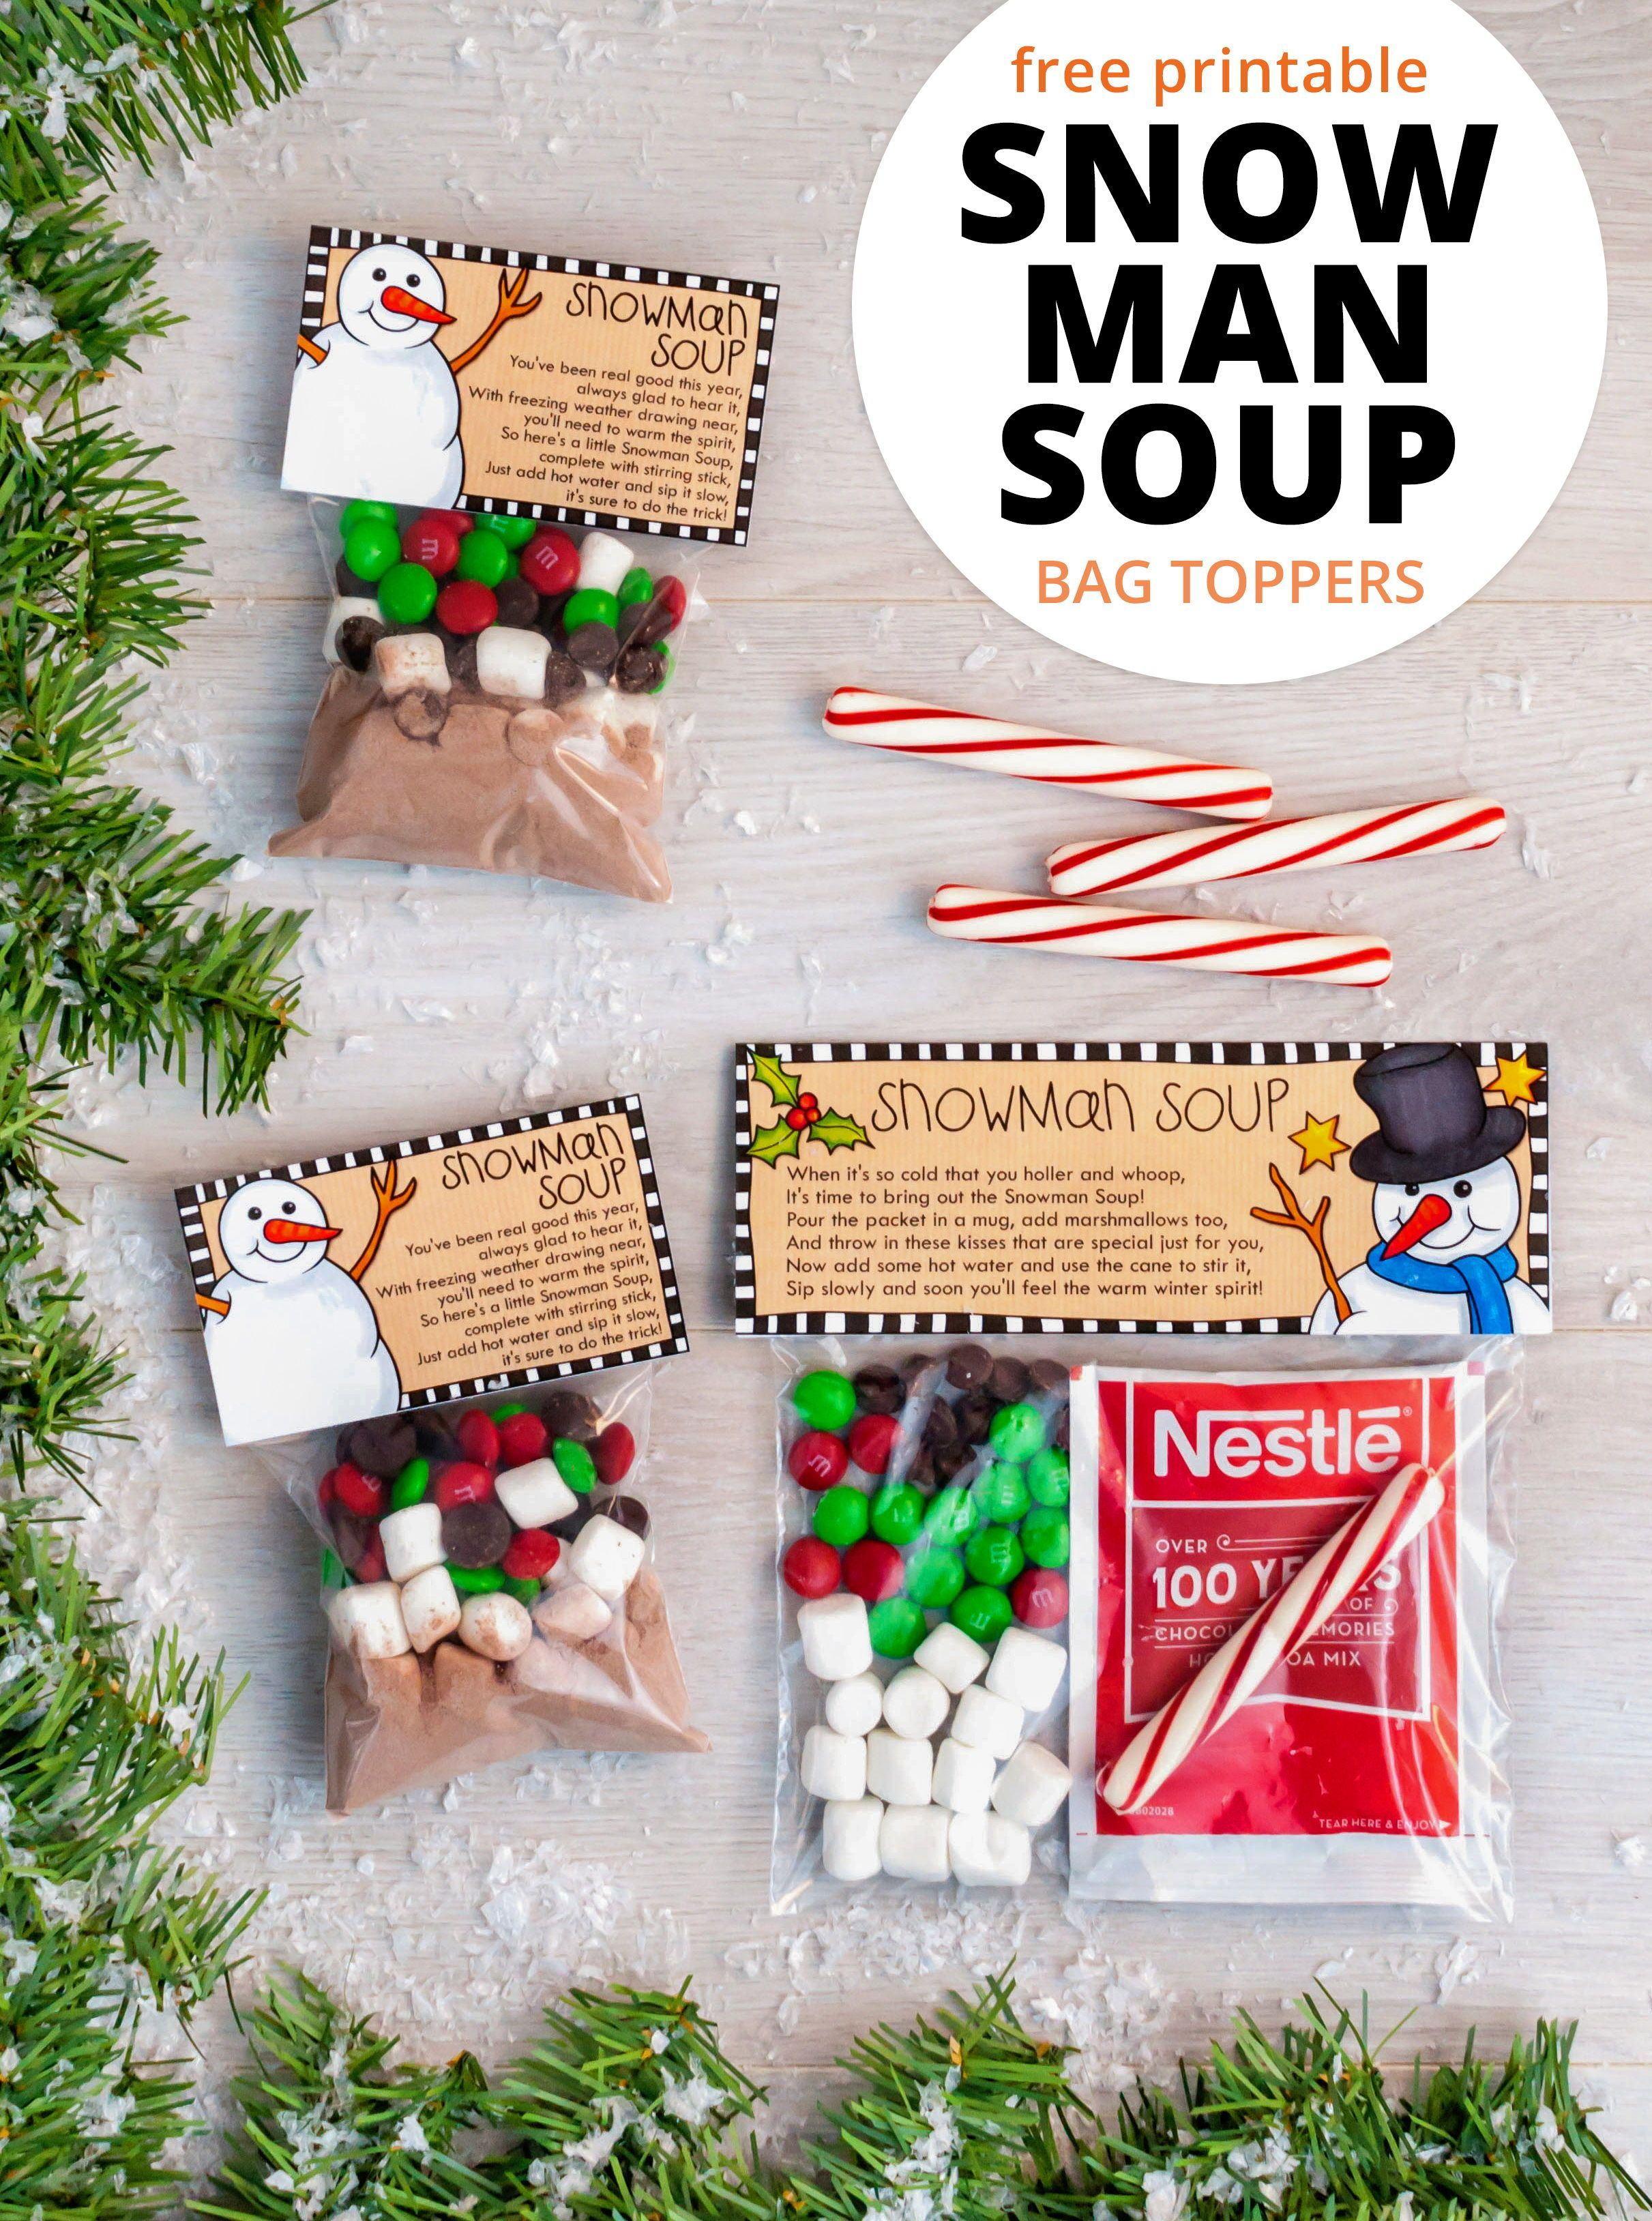 Christmas Printables Trend 2020 Christmas treat bag toppers: Magic Reindeer Treats & Snowman Soup